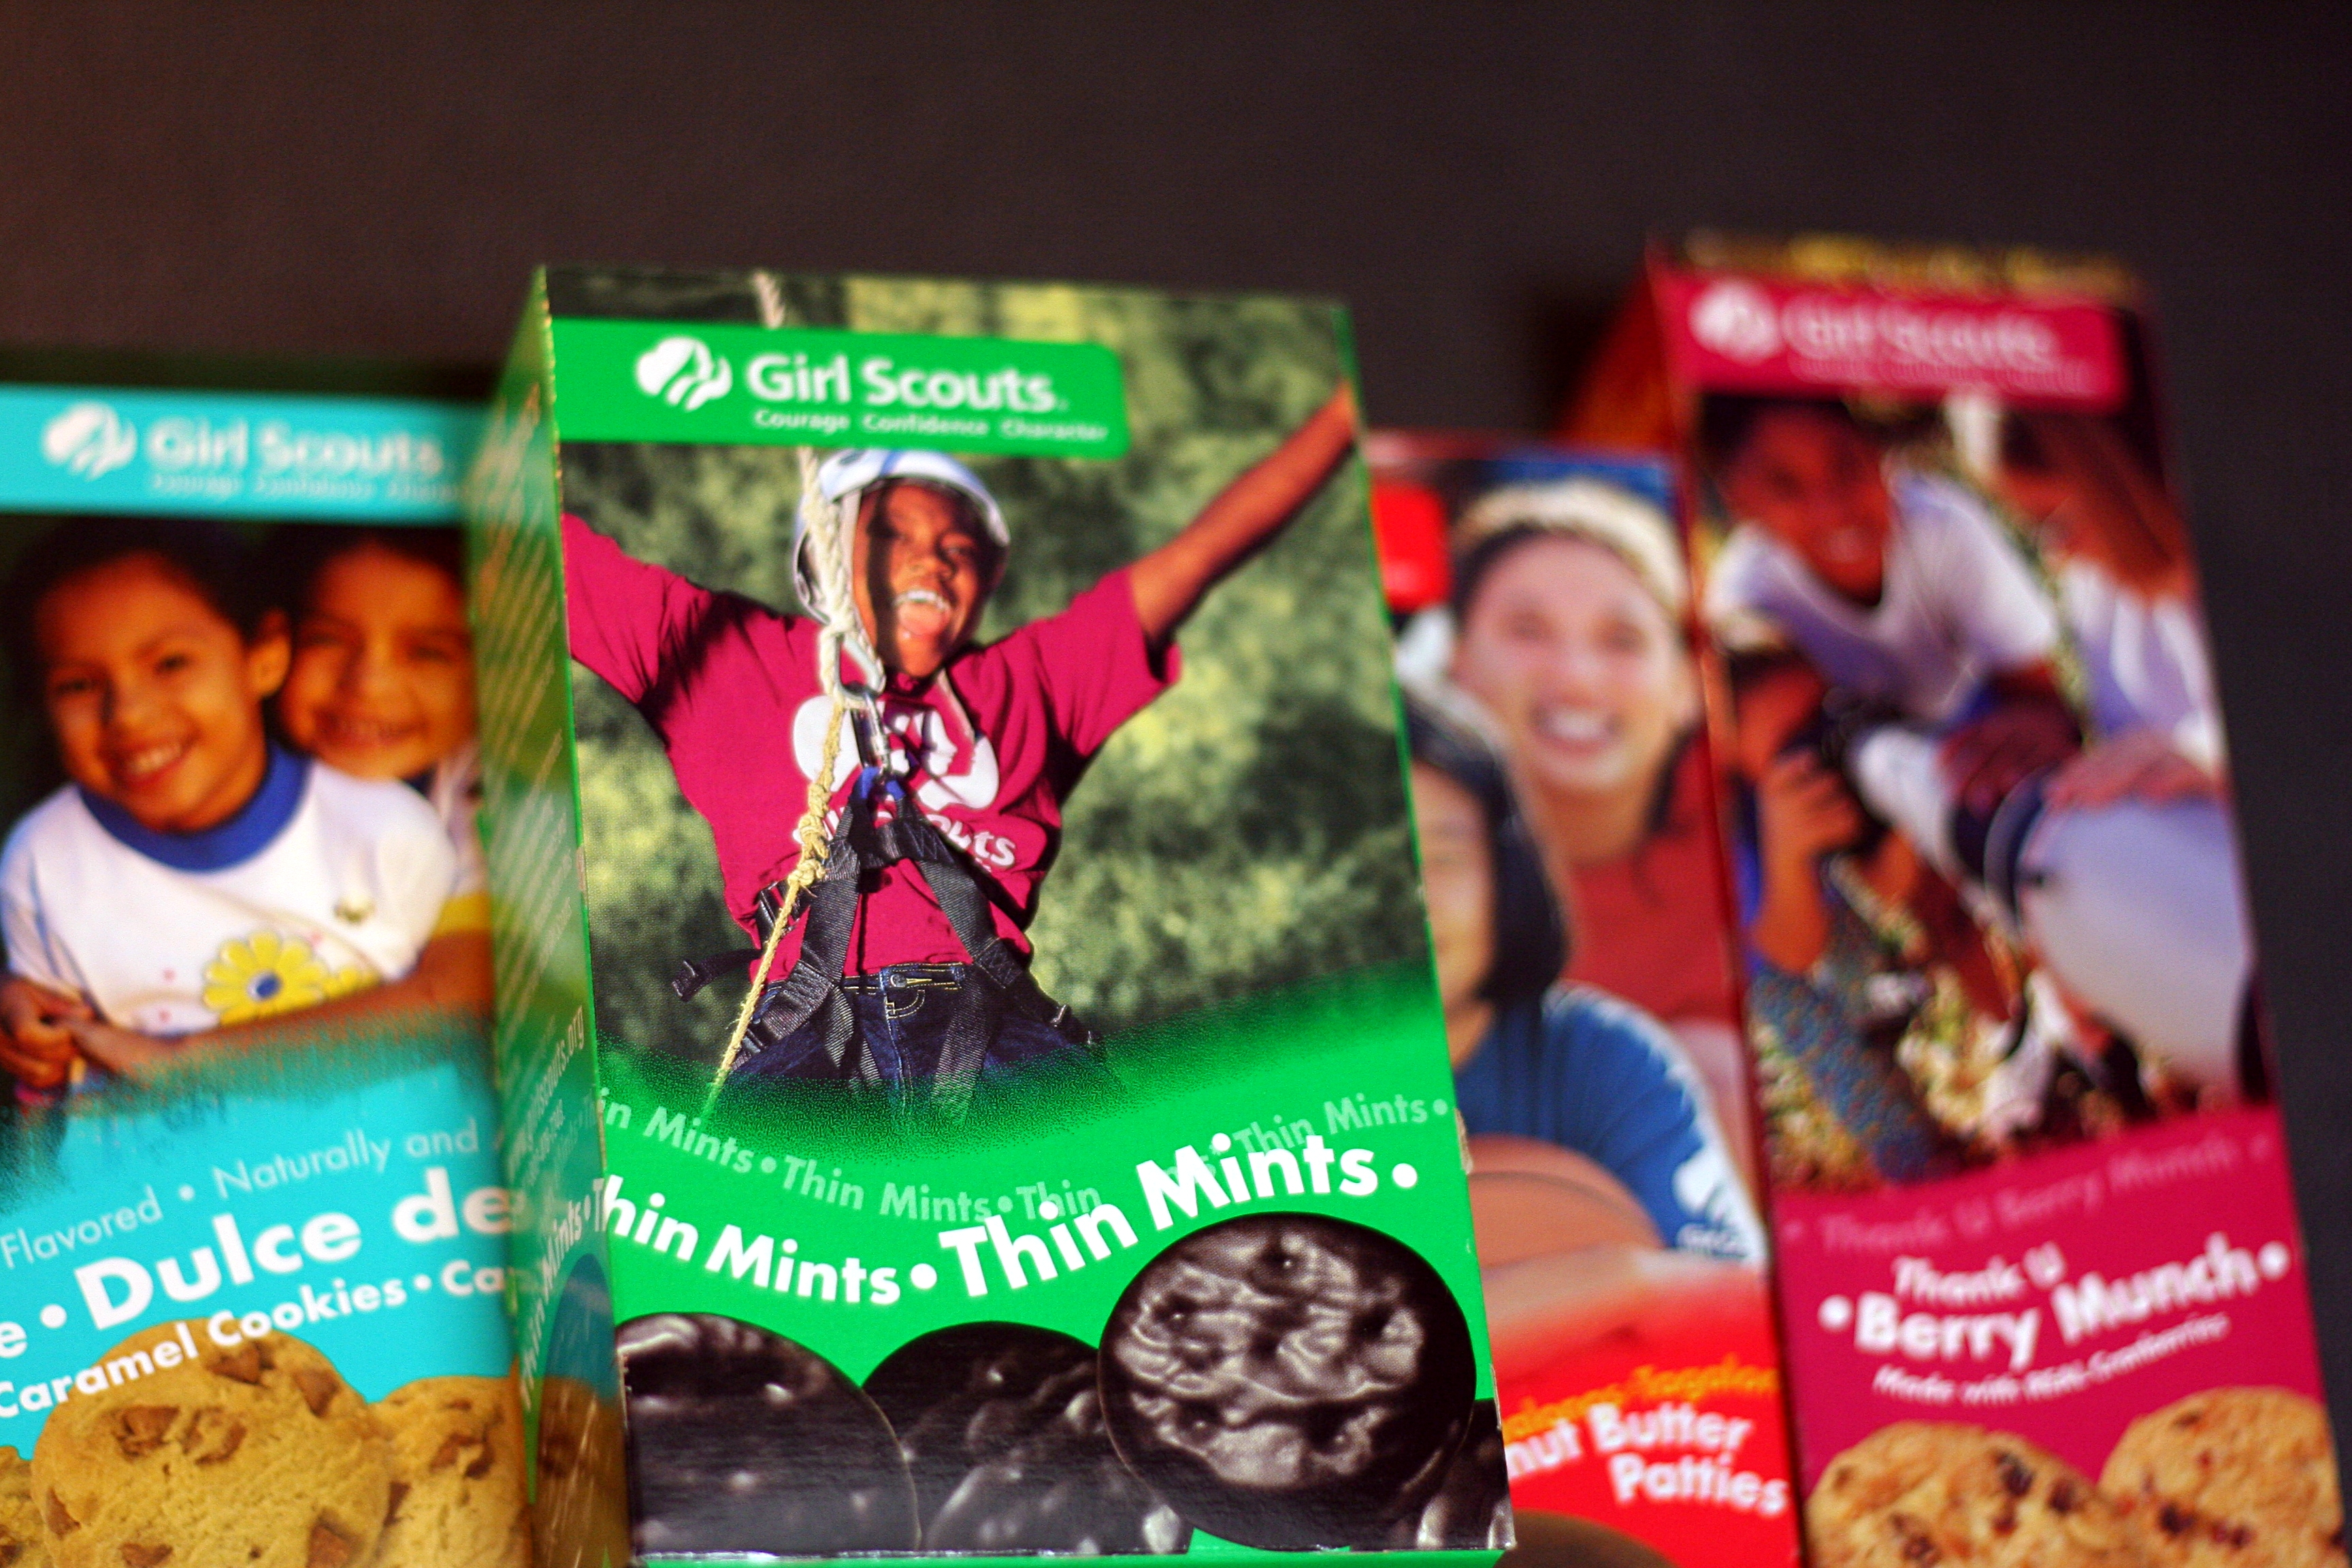 A History Of The Friction Between The Girl Scouts And The Catholic Church